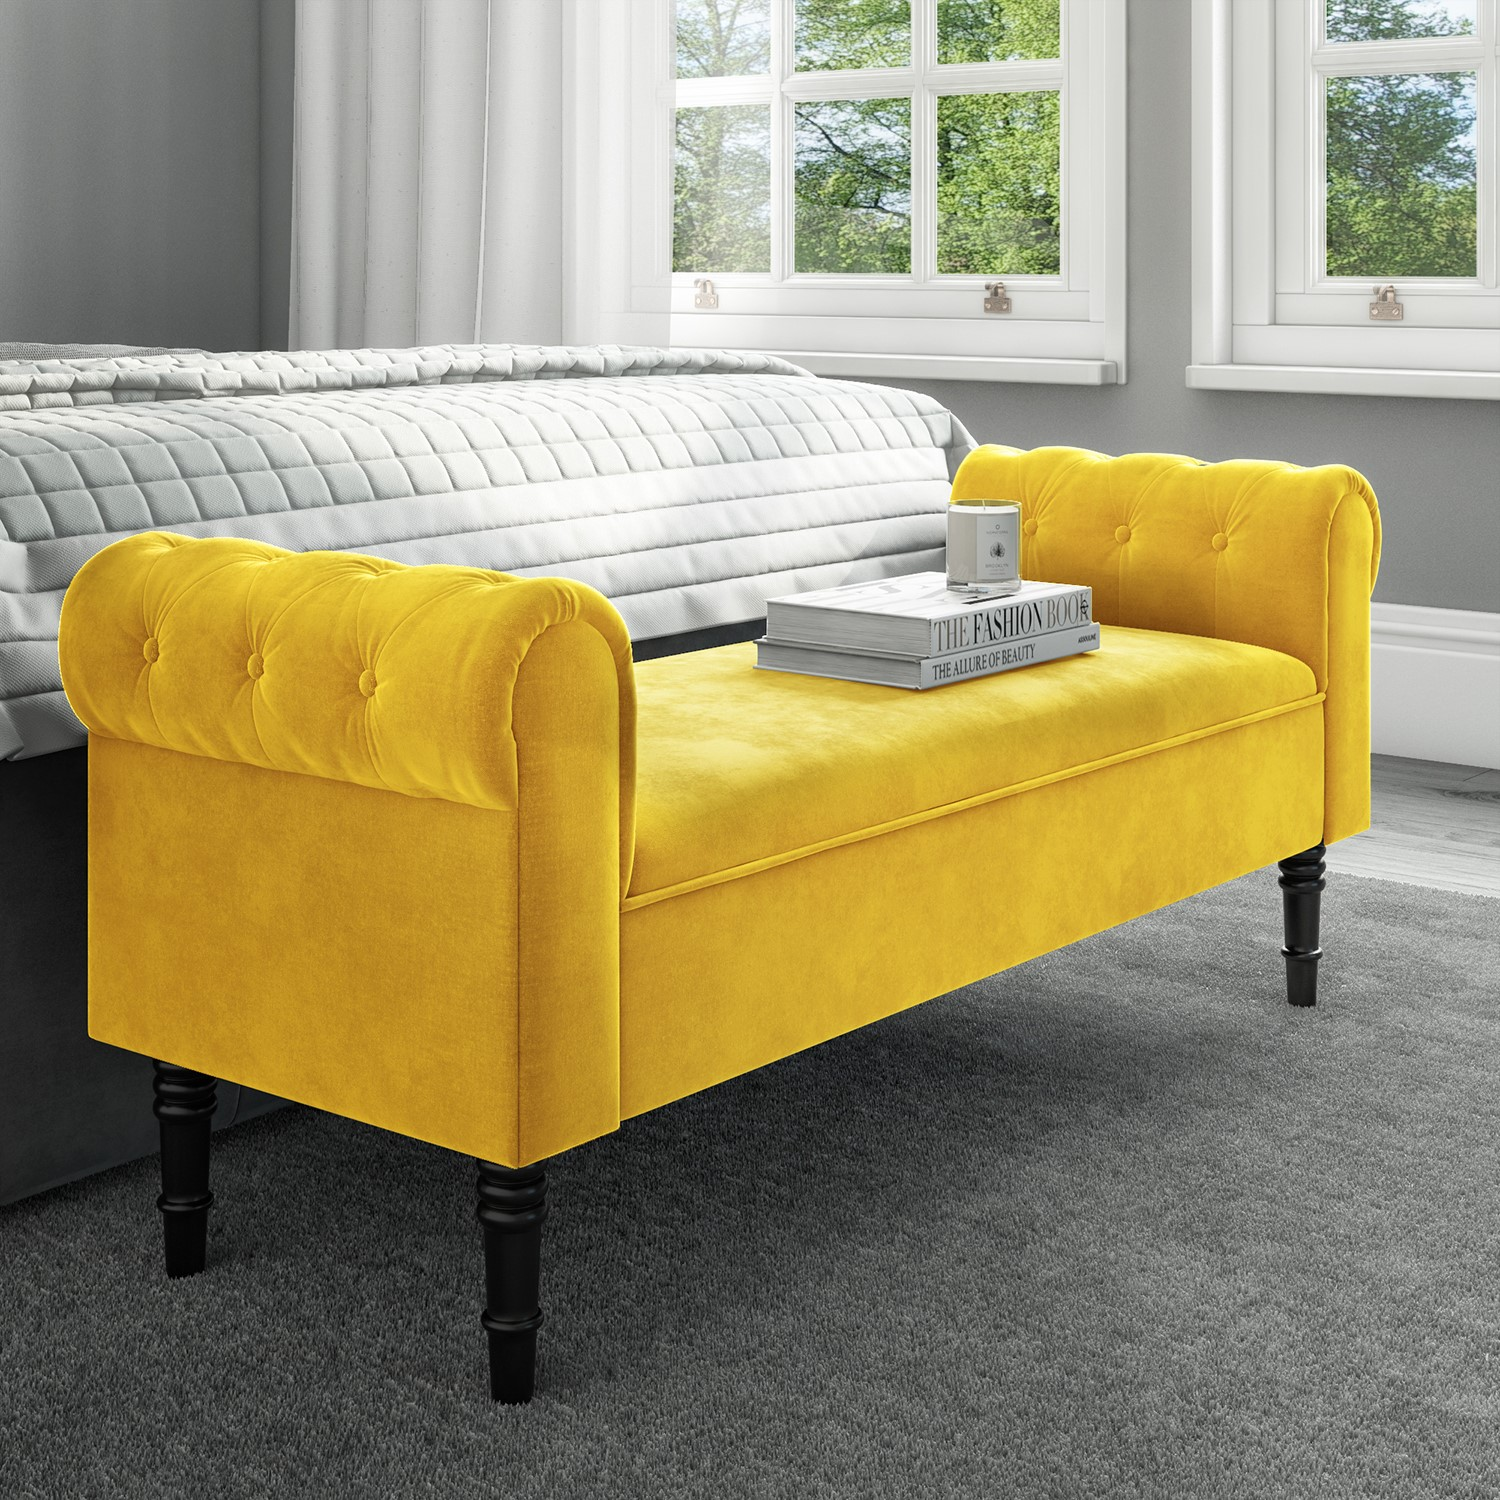 Grade A1 Safina Yellow Velvet Bench With Quilted Arm Rest Furniture123